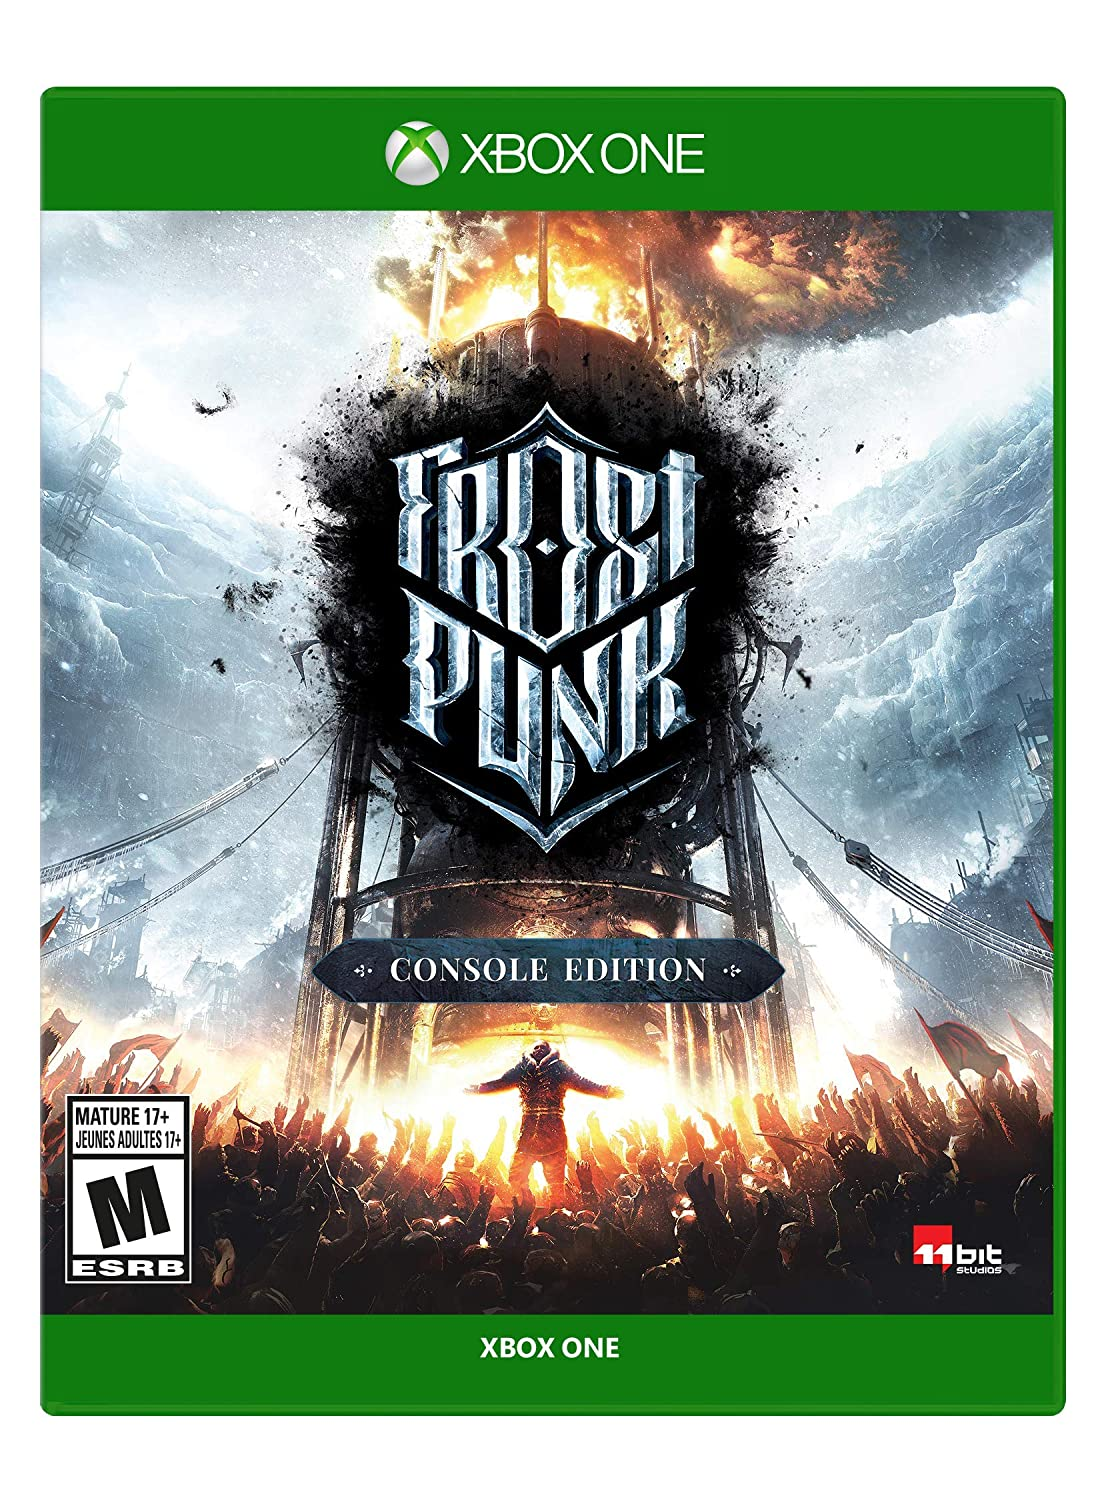 Frostpunk: OFFicial shop Console Edition - One Xbox famous